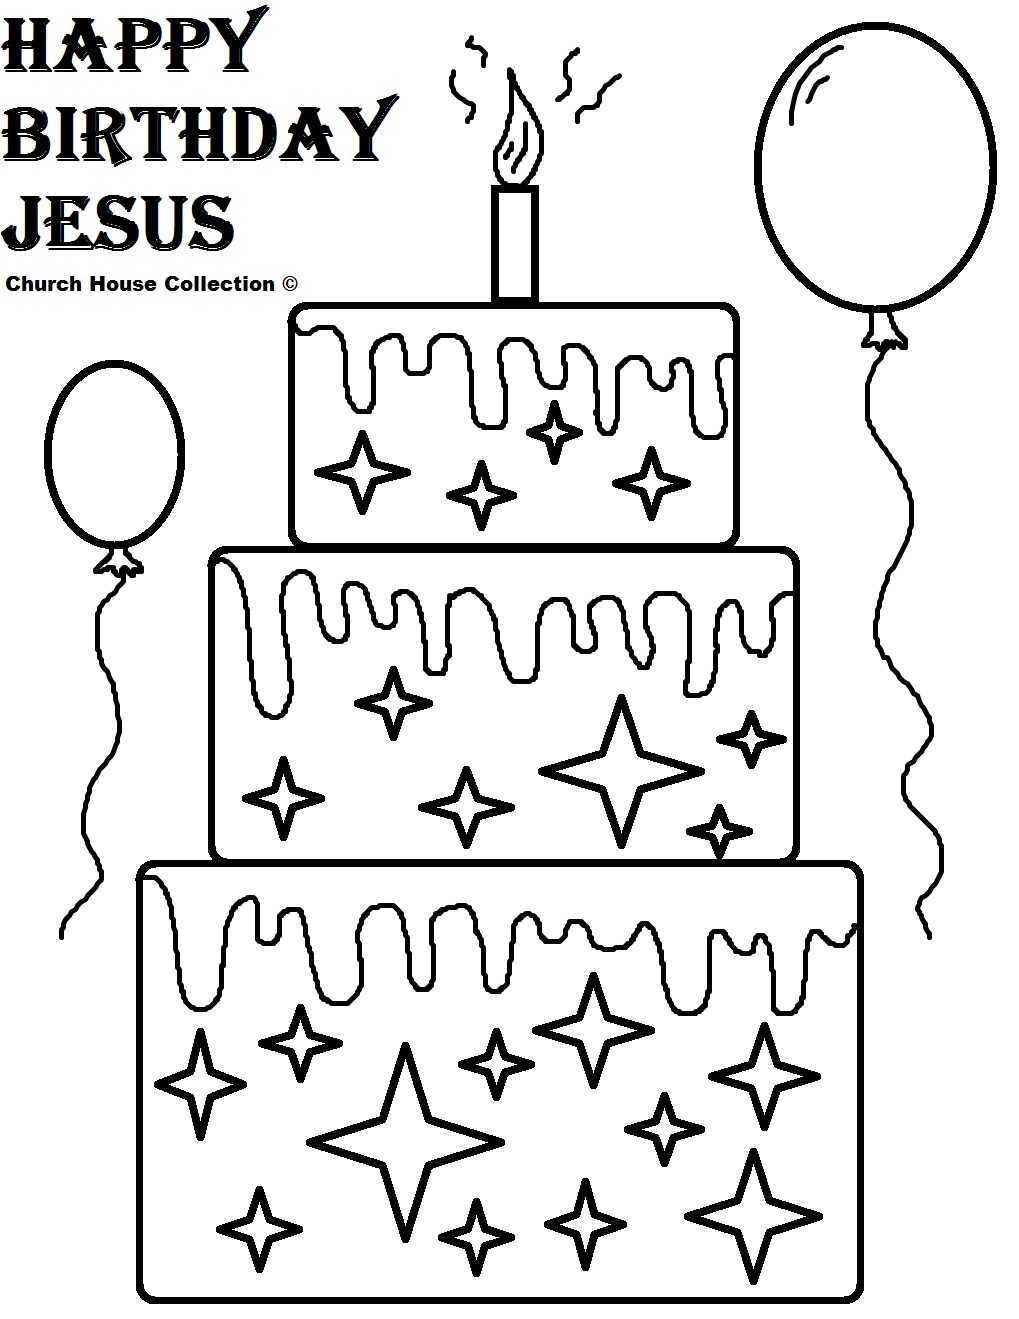 happy birthday jesus coloring pages - Baby Jesus Coloring Pages Kids